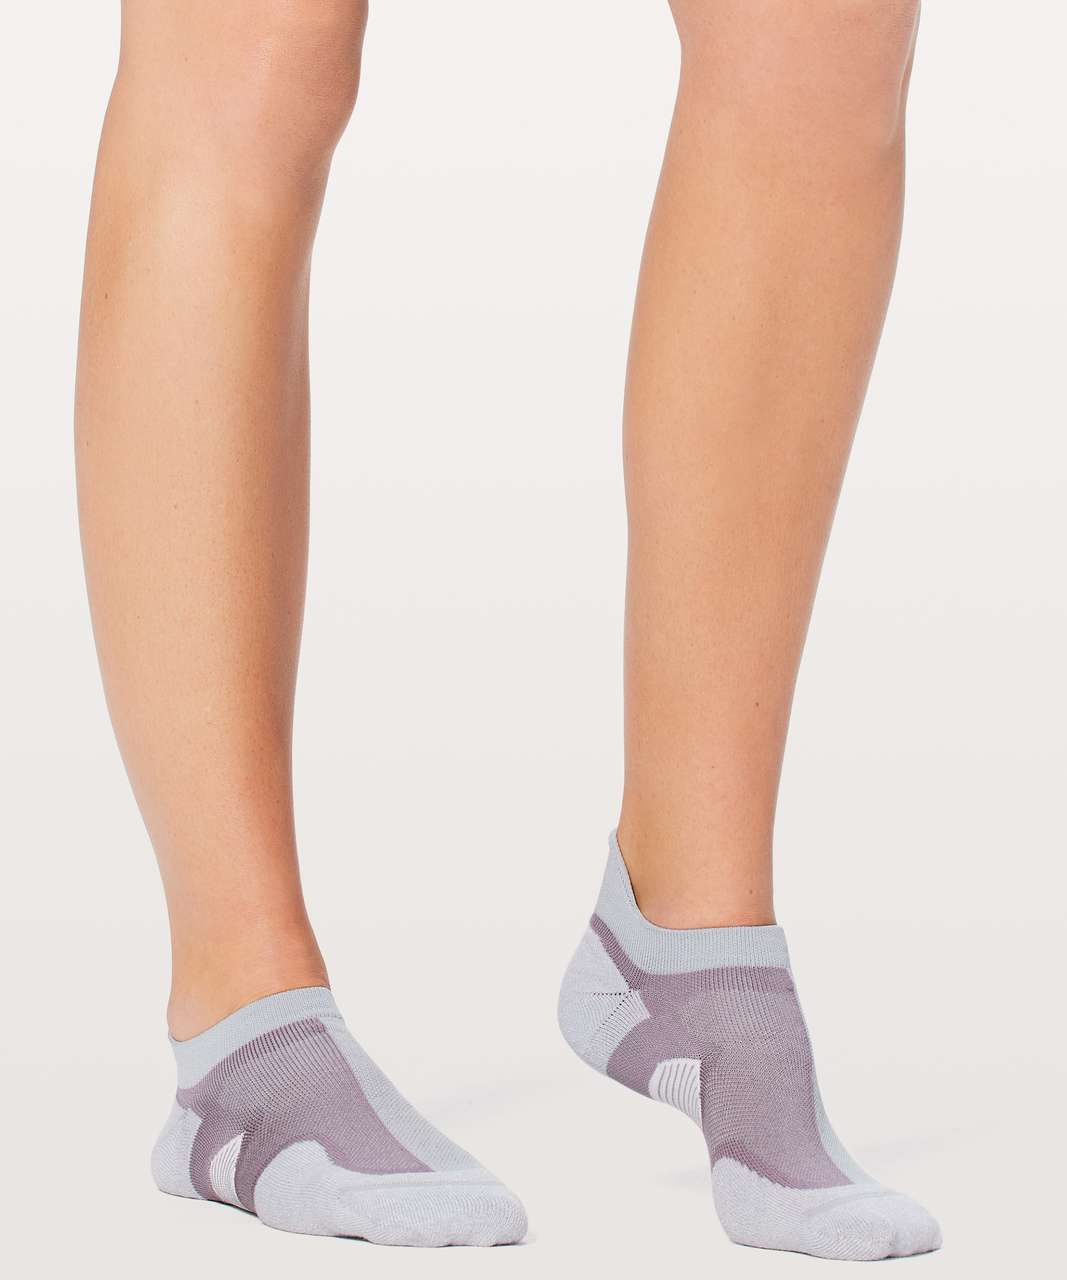 Lululemon Speed Sock *Silver - Silver Fox / Dusty Dawn / White